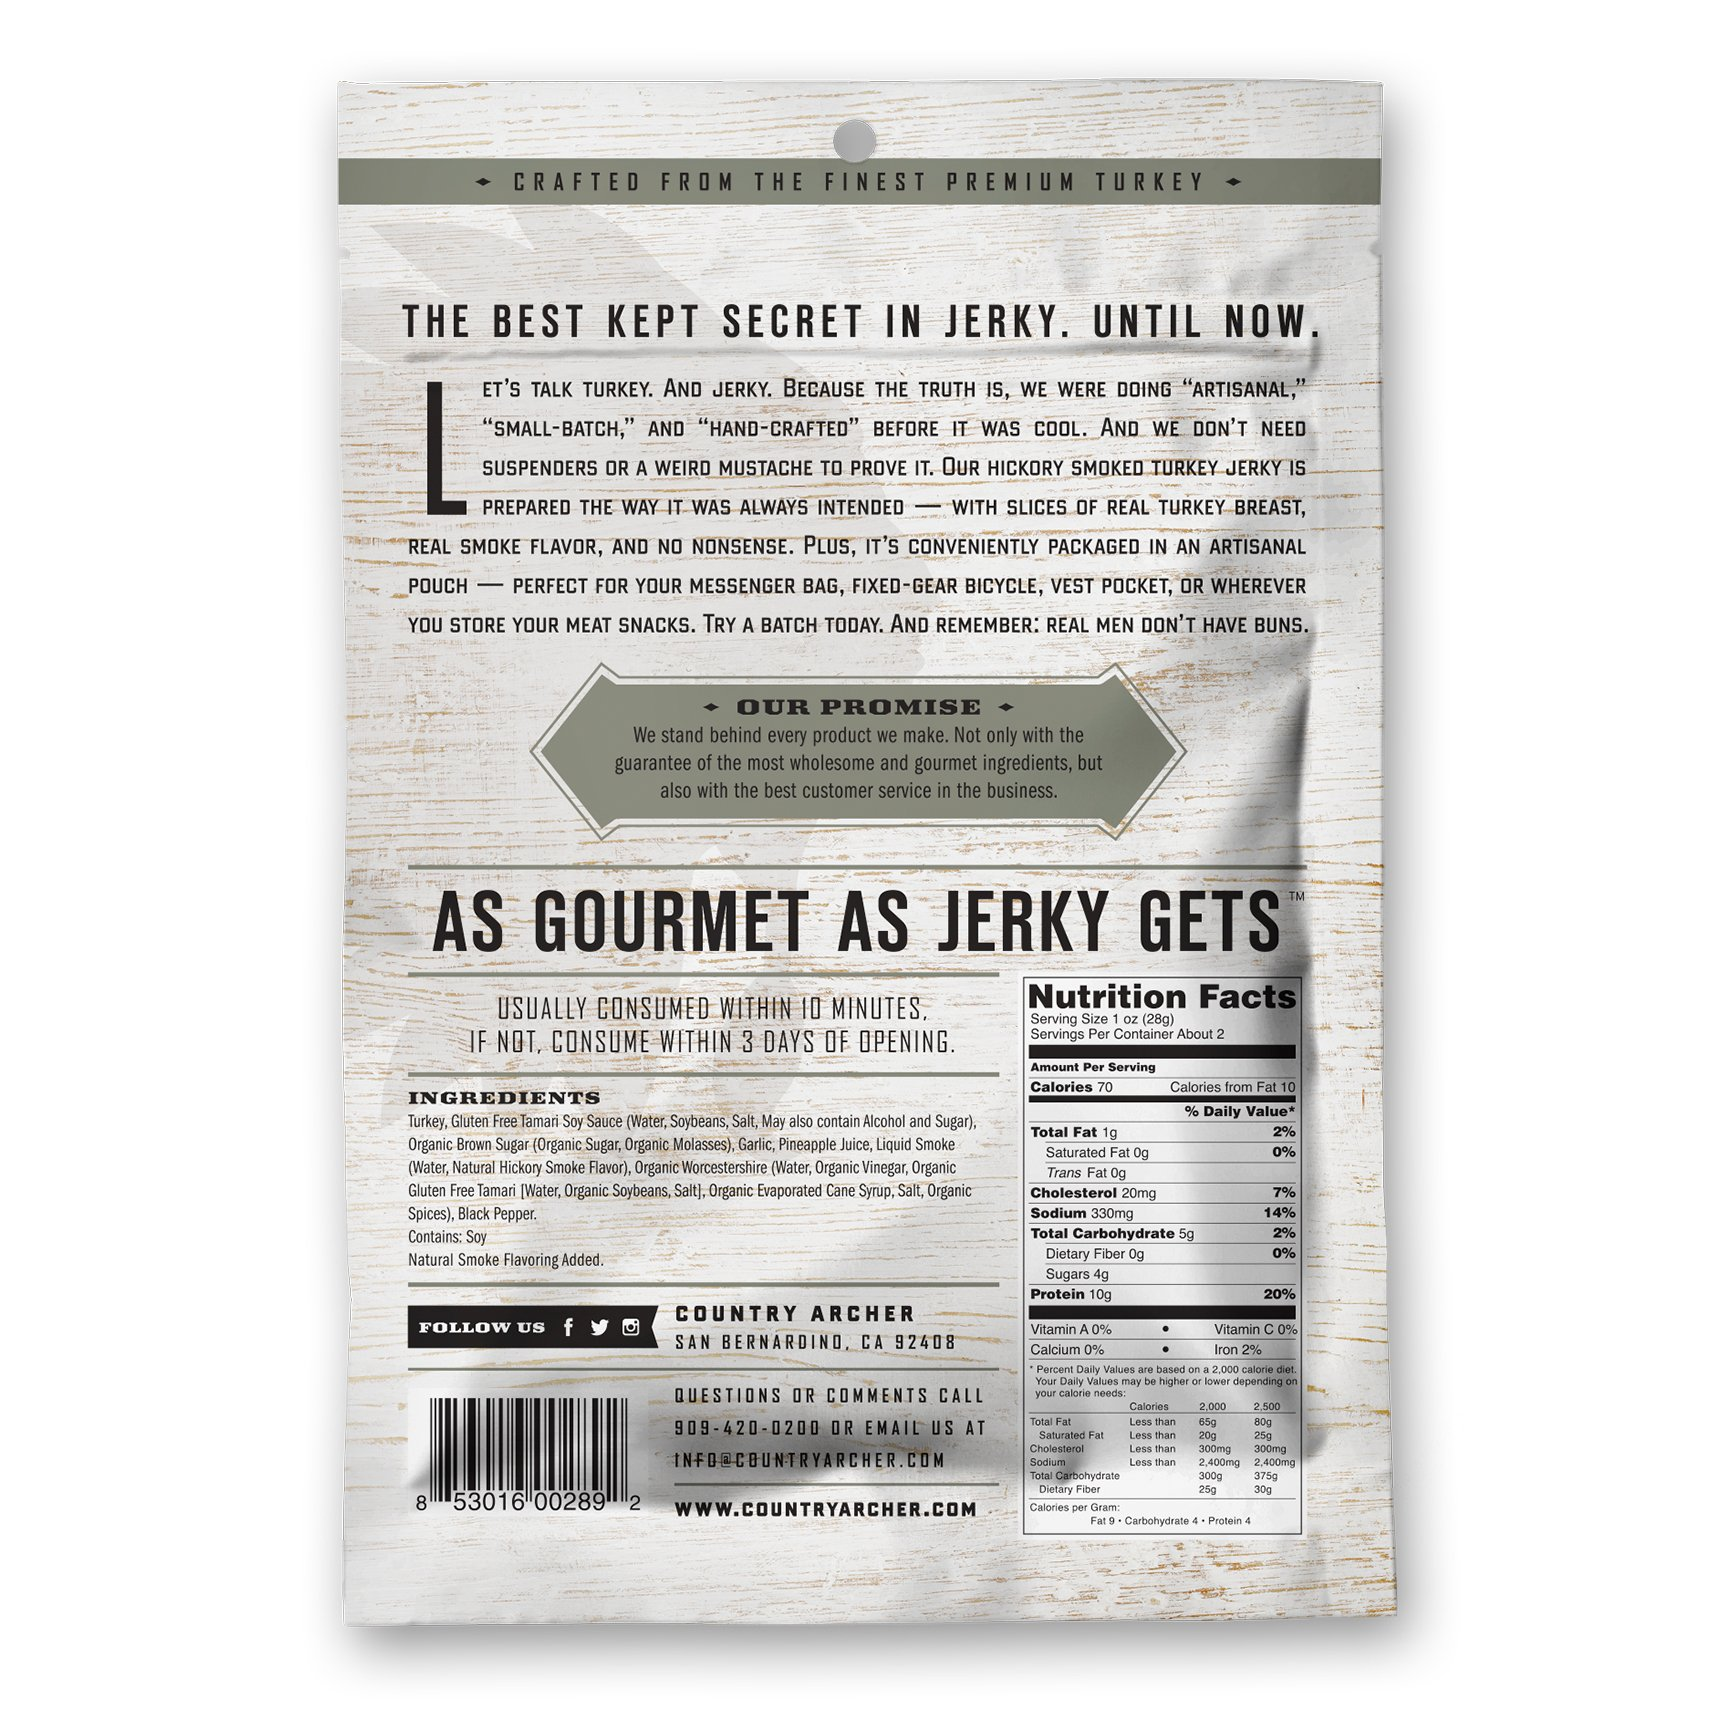 Hickory Smoke Turkey Jerky by Country Archer | Antibiotic Free | Gluten Free | 2.75 Ounce (Pack of 3) by Country Archer (Image #2)